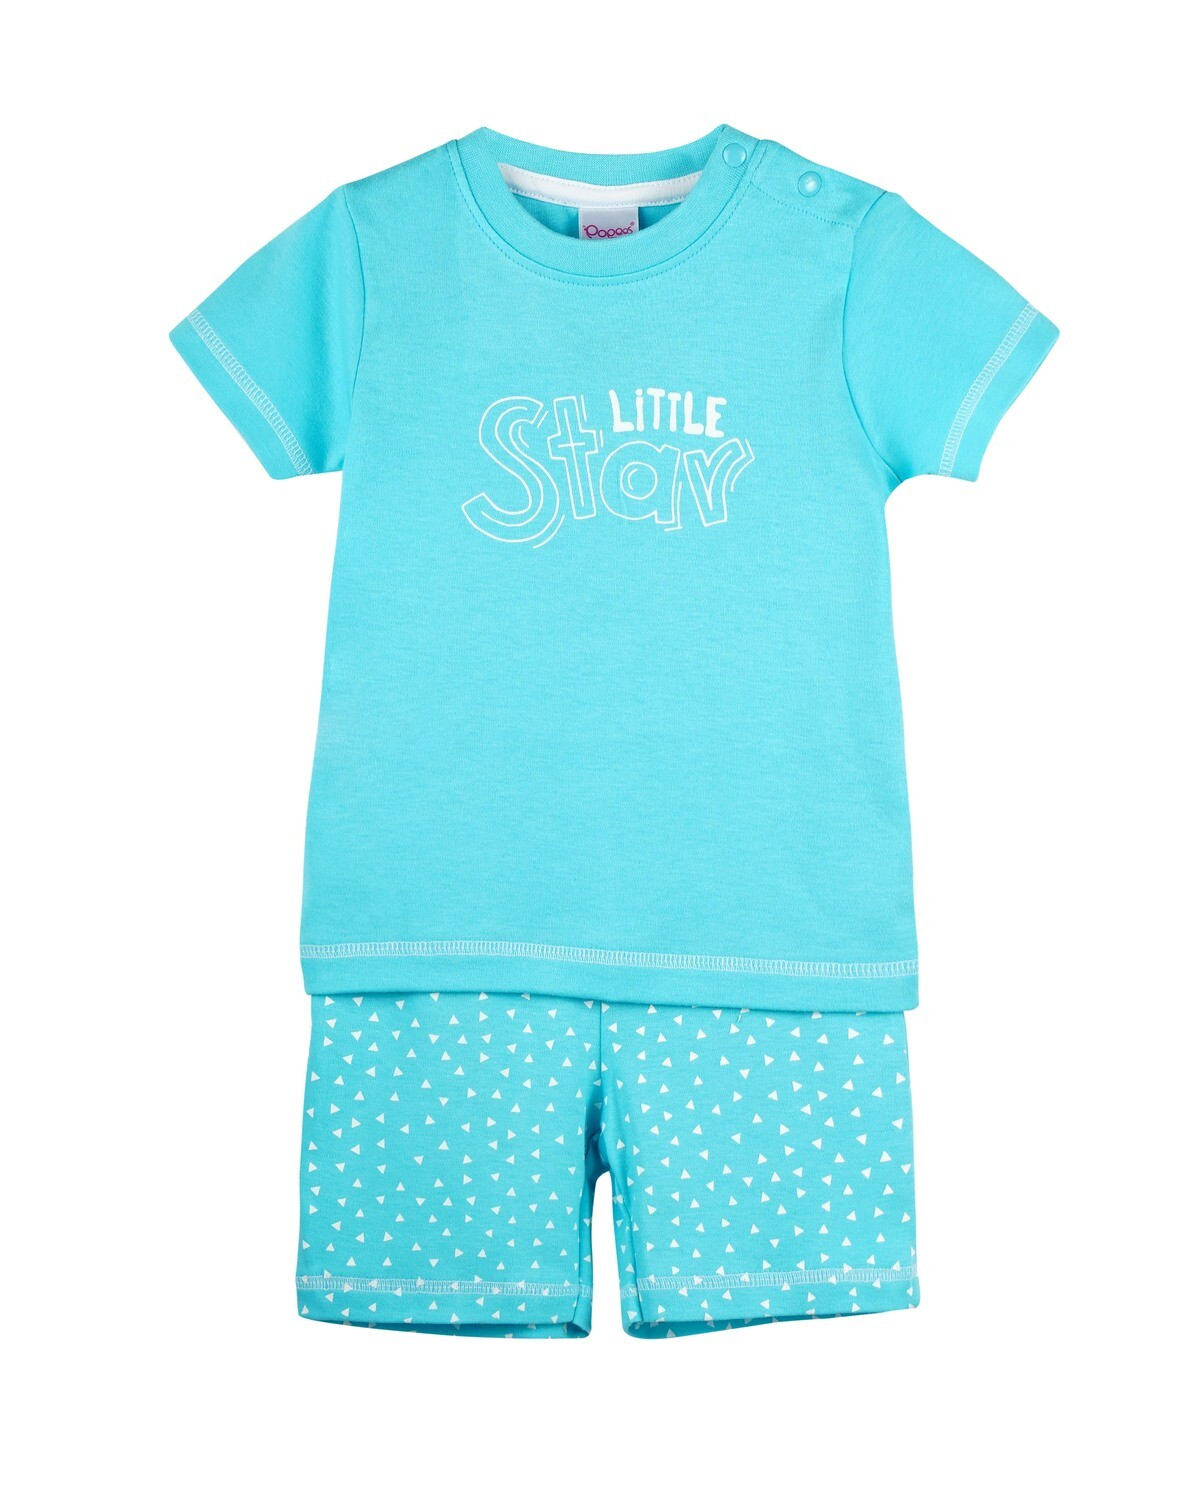 POP-HS-B-TS-003 Blue Radiance Half Sleeve Top and Shorts for Baby Boys